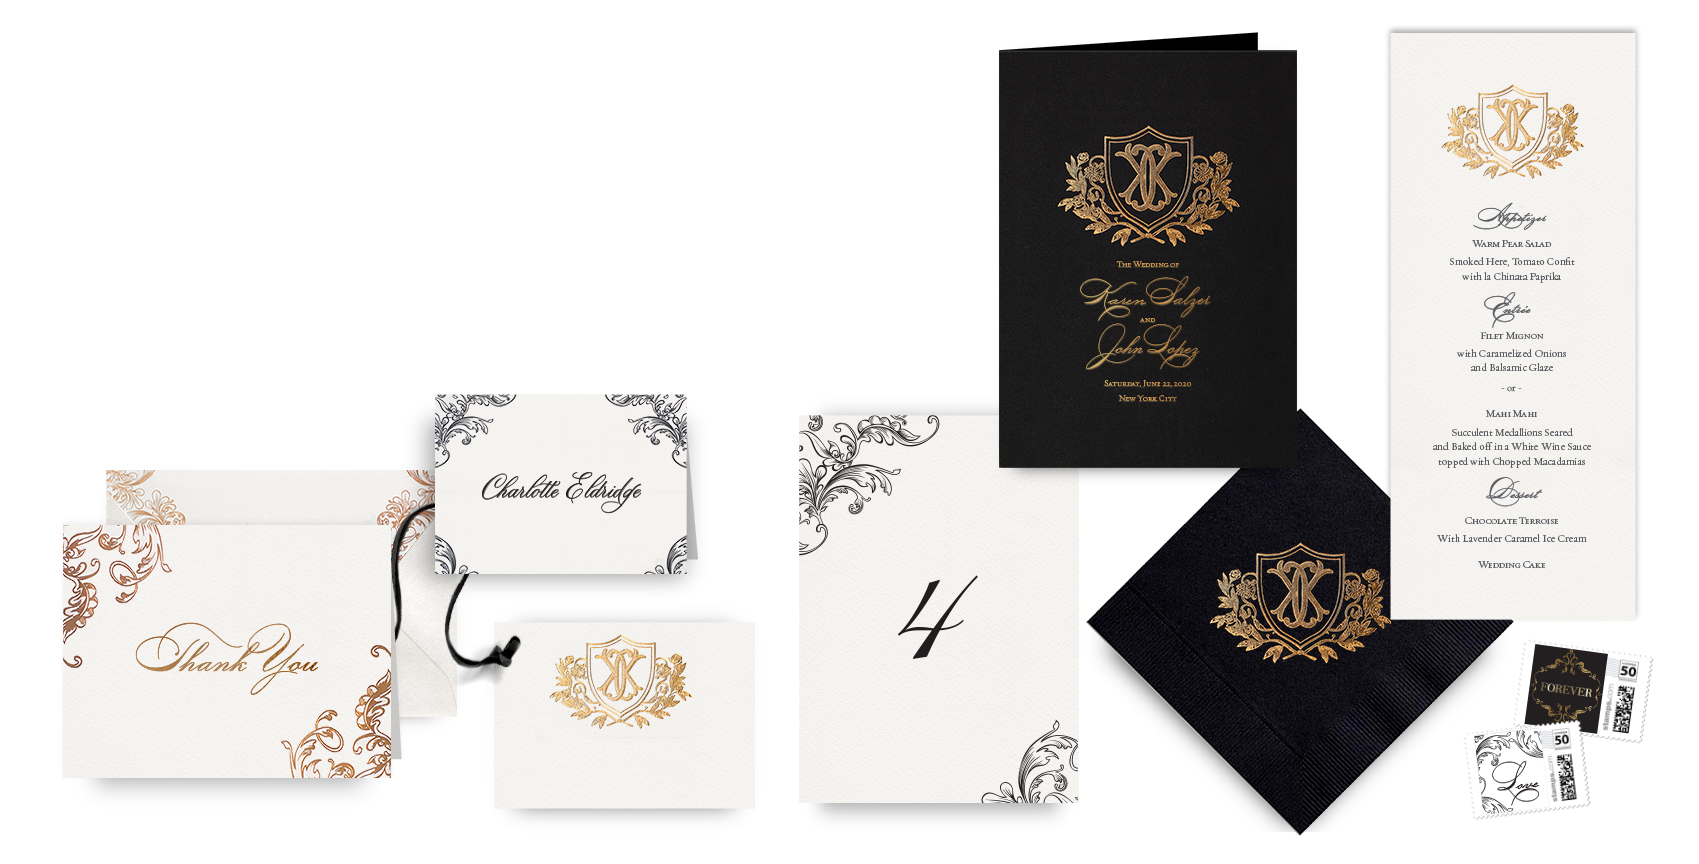 Ornate gold menus, programs and wedding accessories